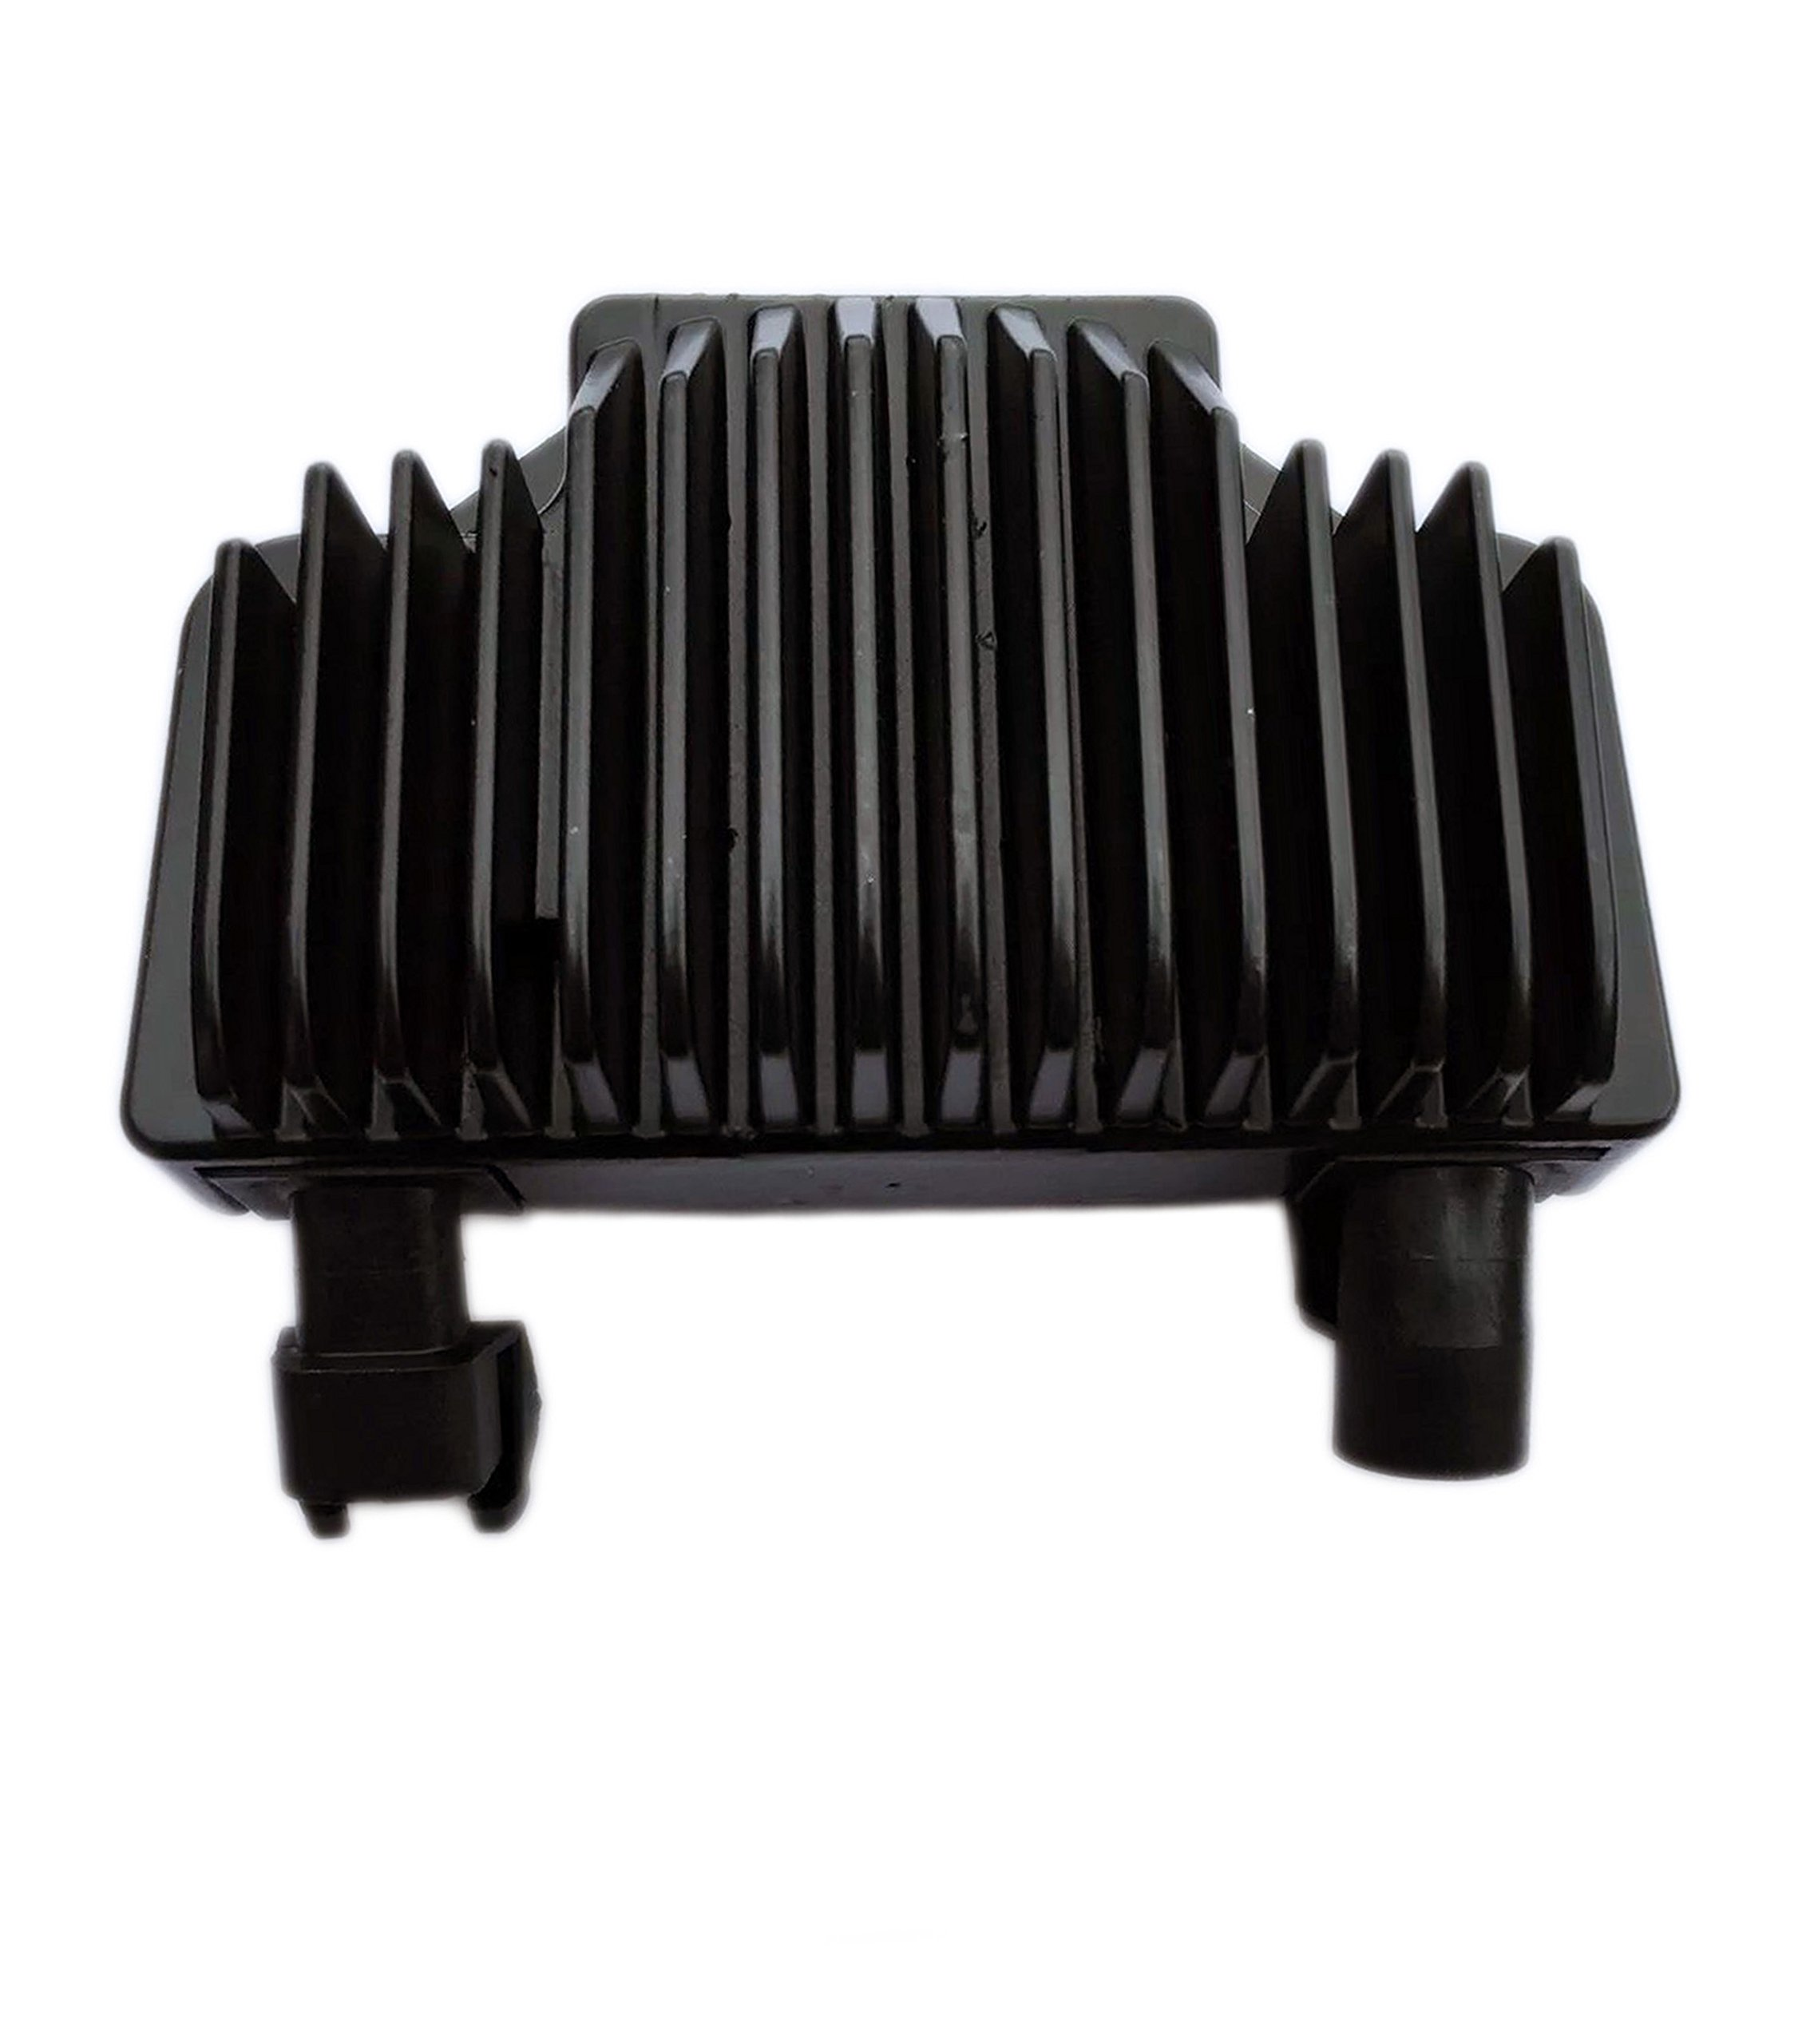 New Voltage Regulator Rectifier For Harley Davidson Dyna Replaces 74631-08A 74631-08, H3108 Black